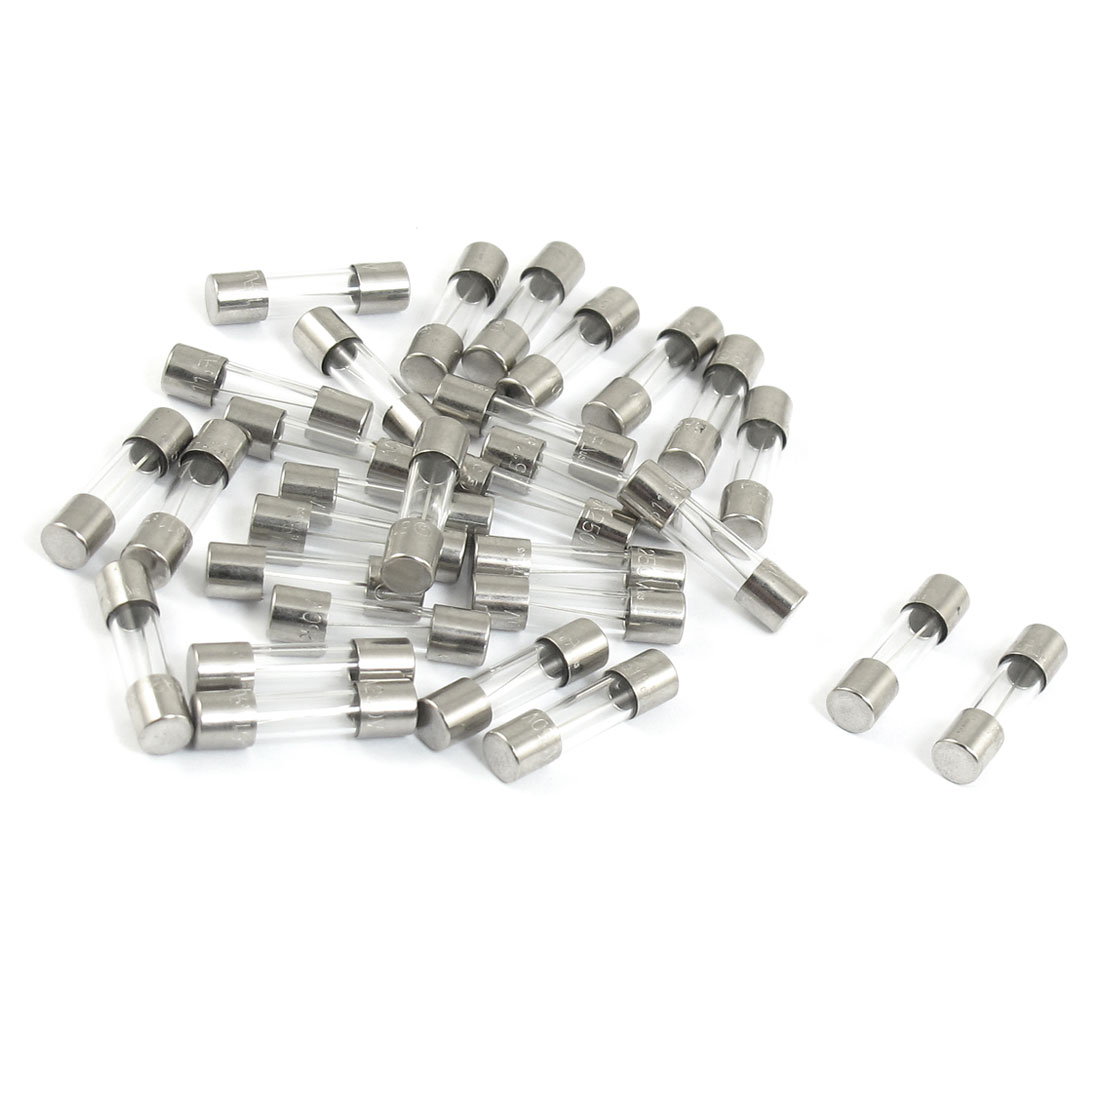 30 Pcs Electronic Fast Blow Glass Fuse Tube 250V 8A